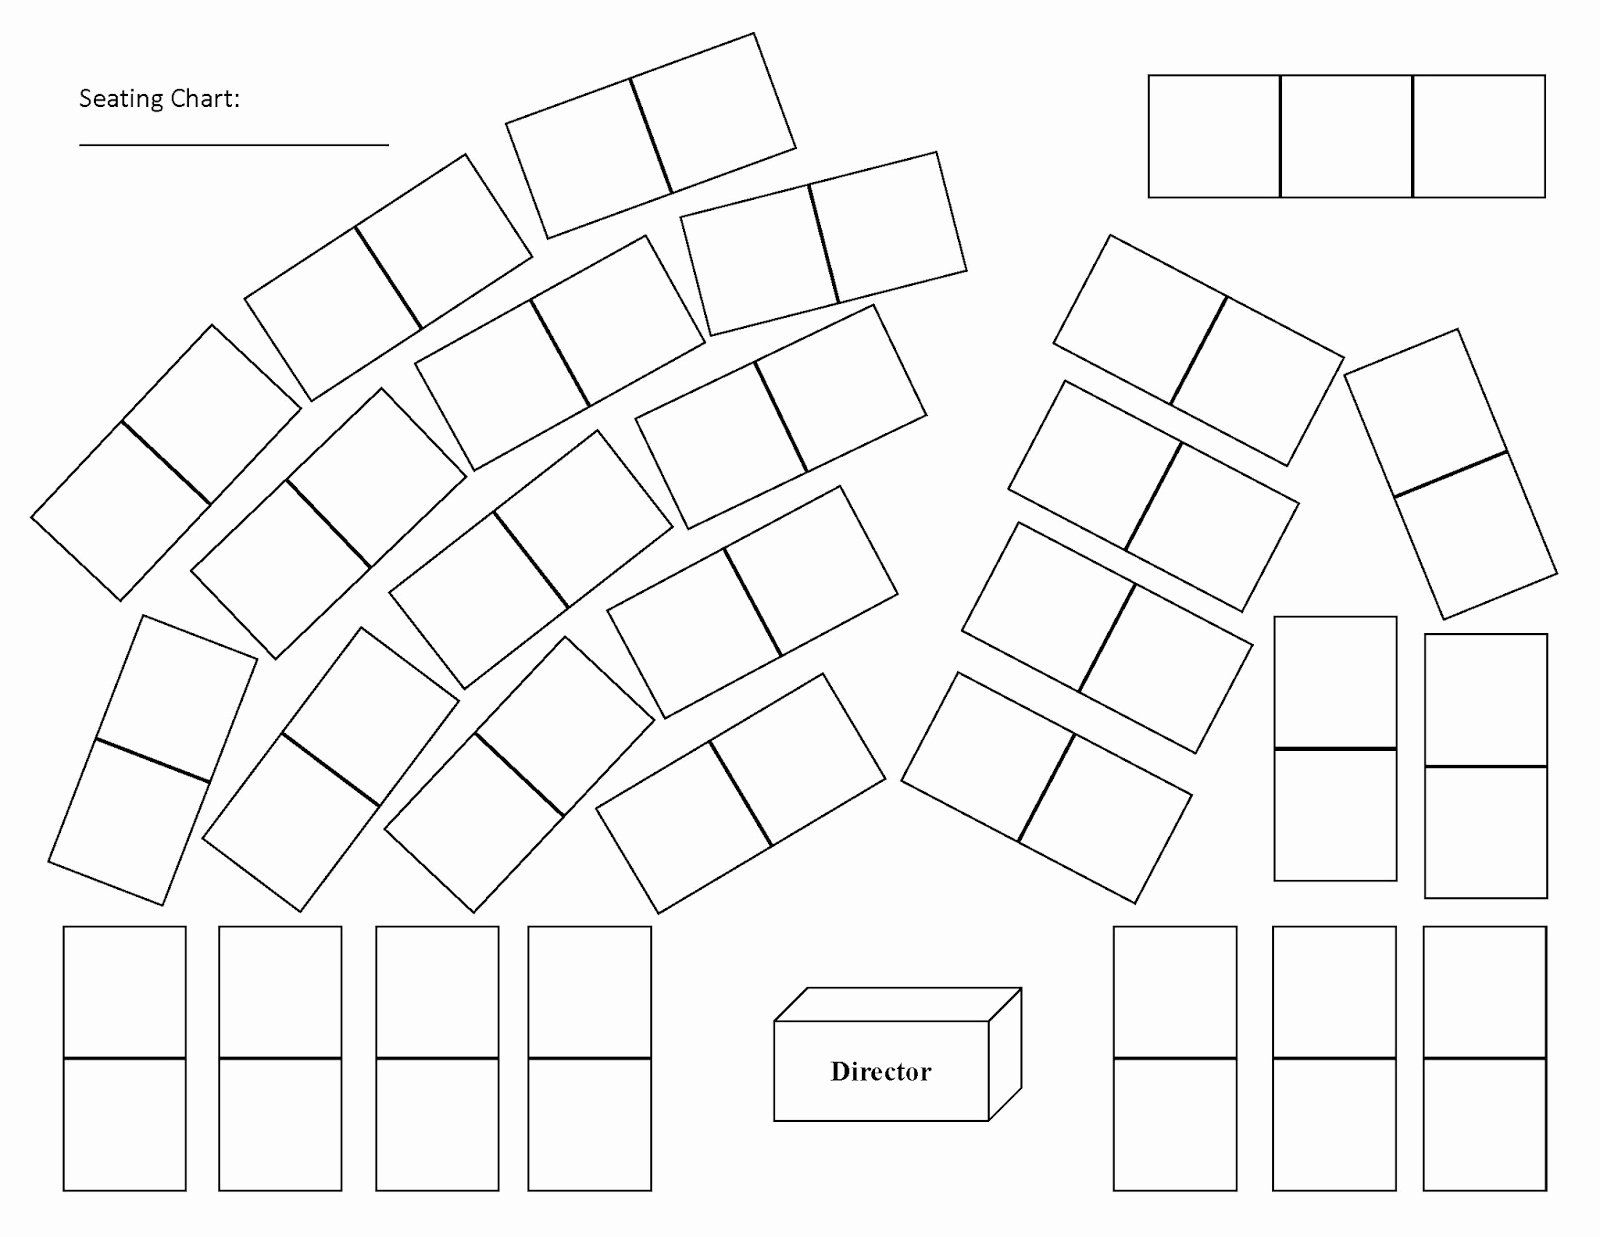 Choir Seating Chart Template Fresh Free Classroom Seating